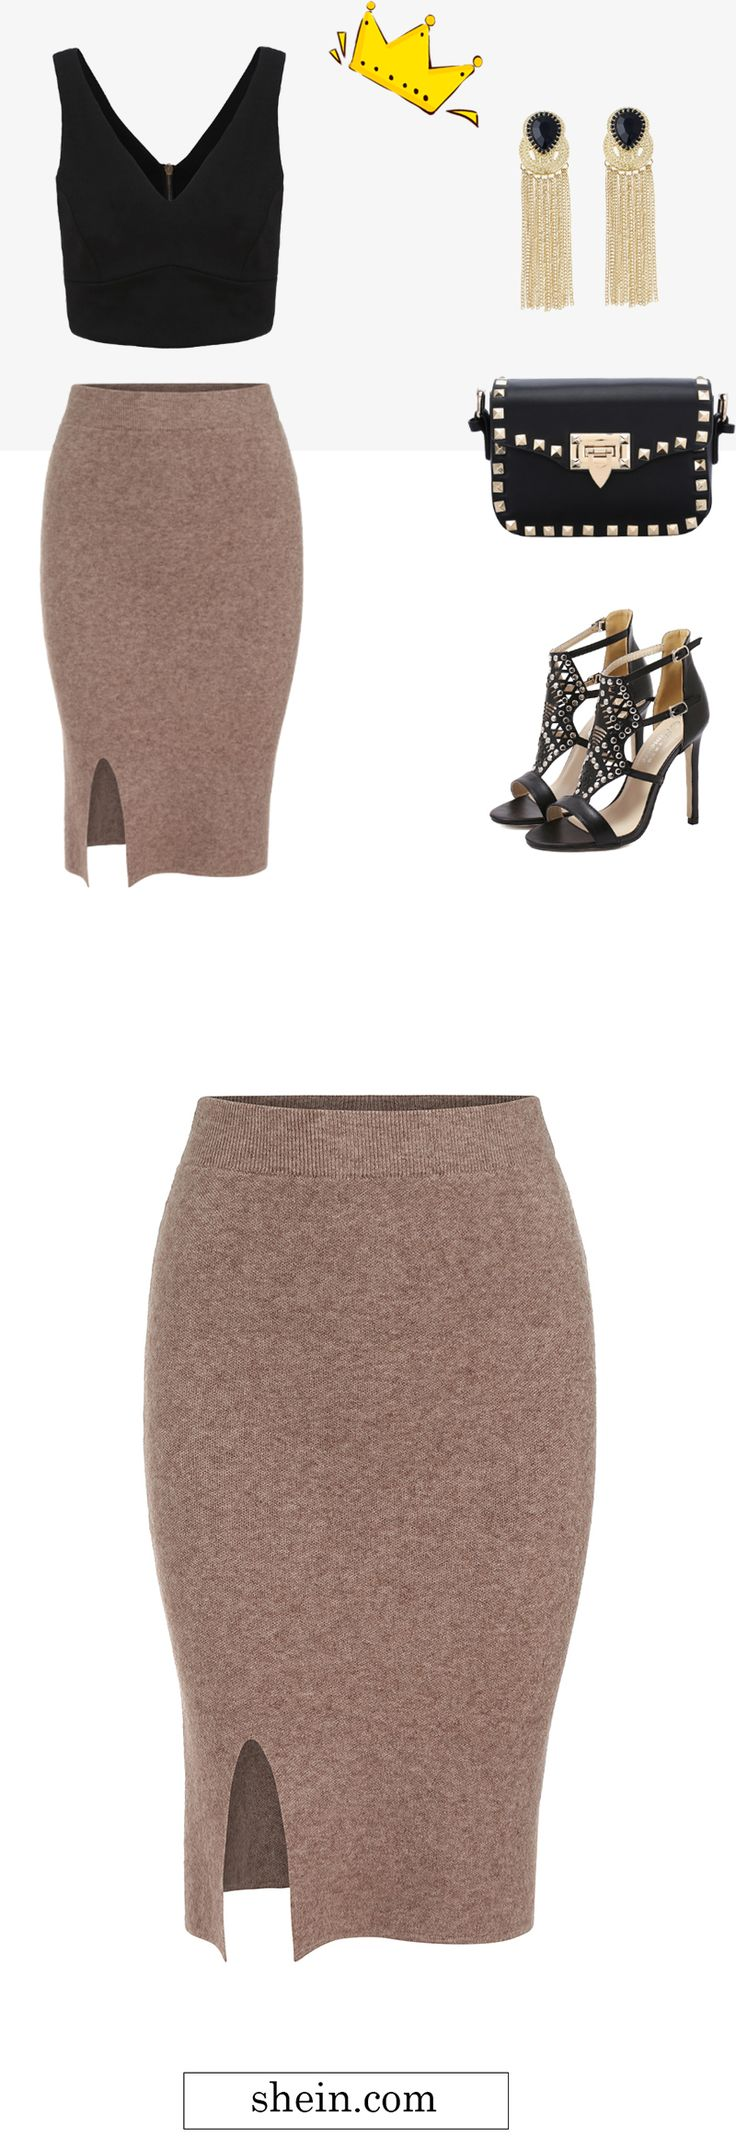 Sexy party feel outfit-camel split pencil knit skirt with crop cami top. Shein design.